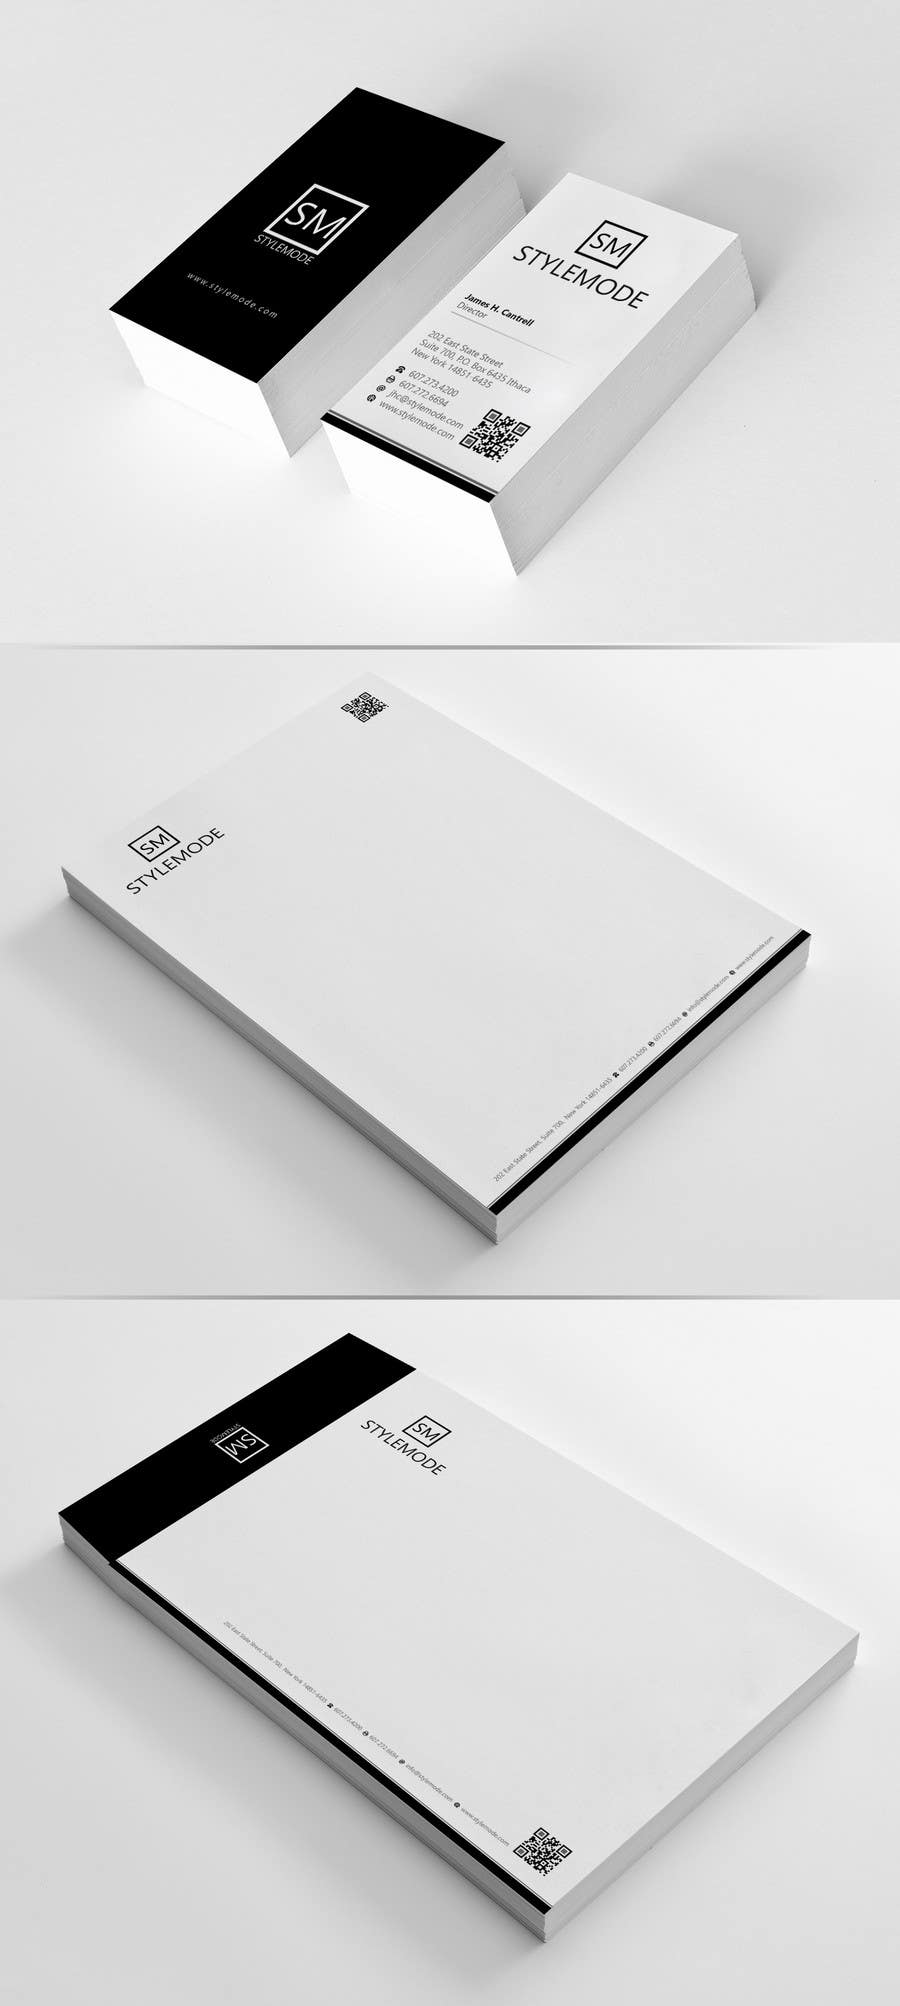 #22 for Stationery Design for STYLEMODE, a online clothing and accessories retailer by Brandwar